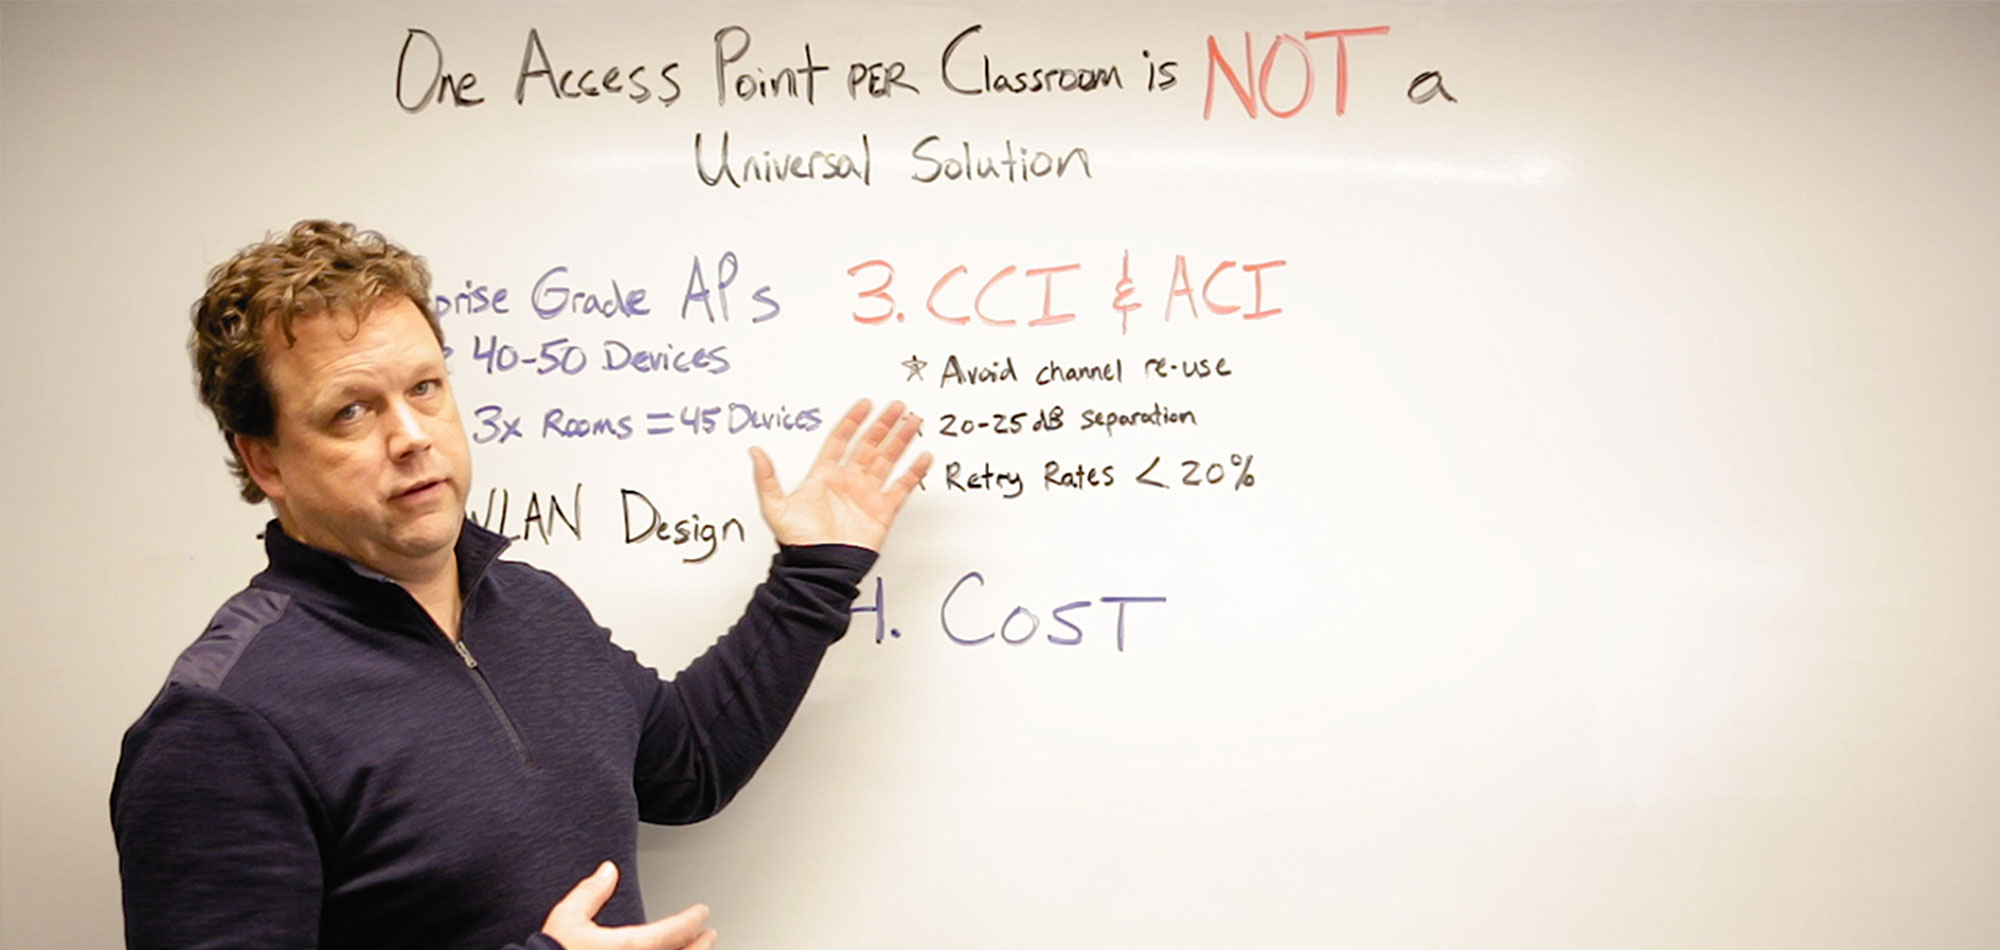 Why One Access Point Per Classroom is NOT a Universal Solution [Whiteboard Video]